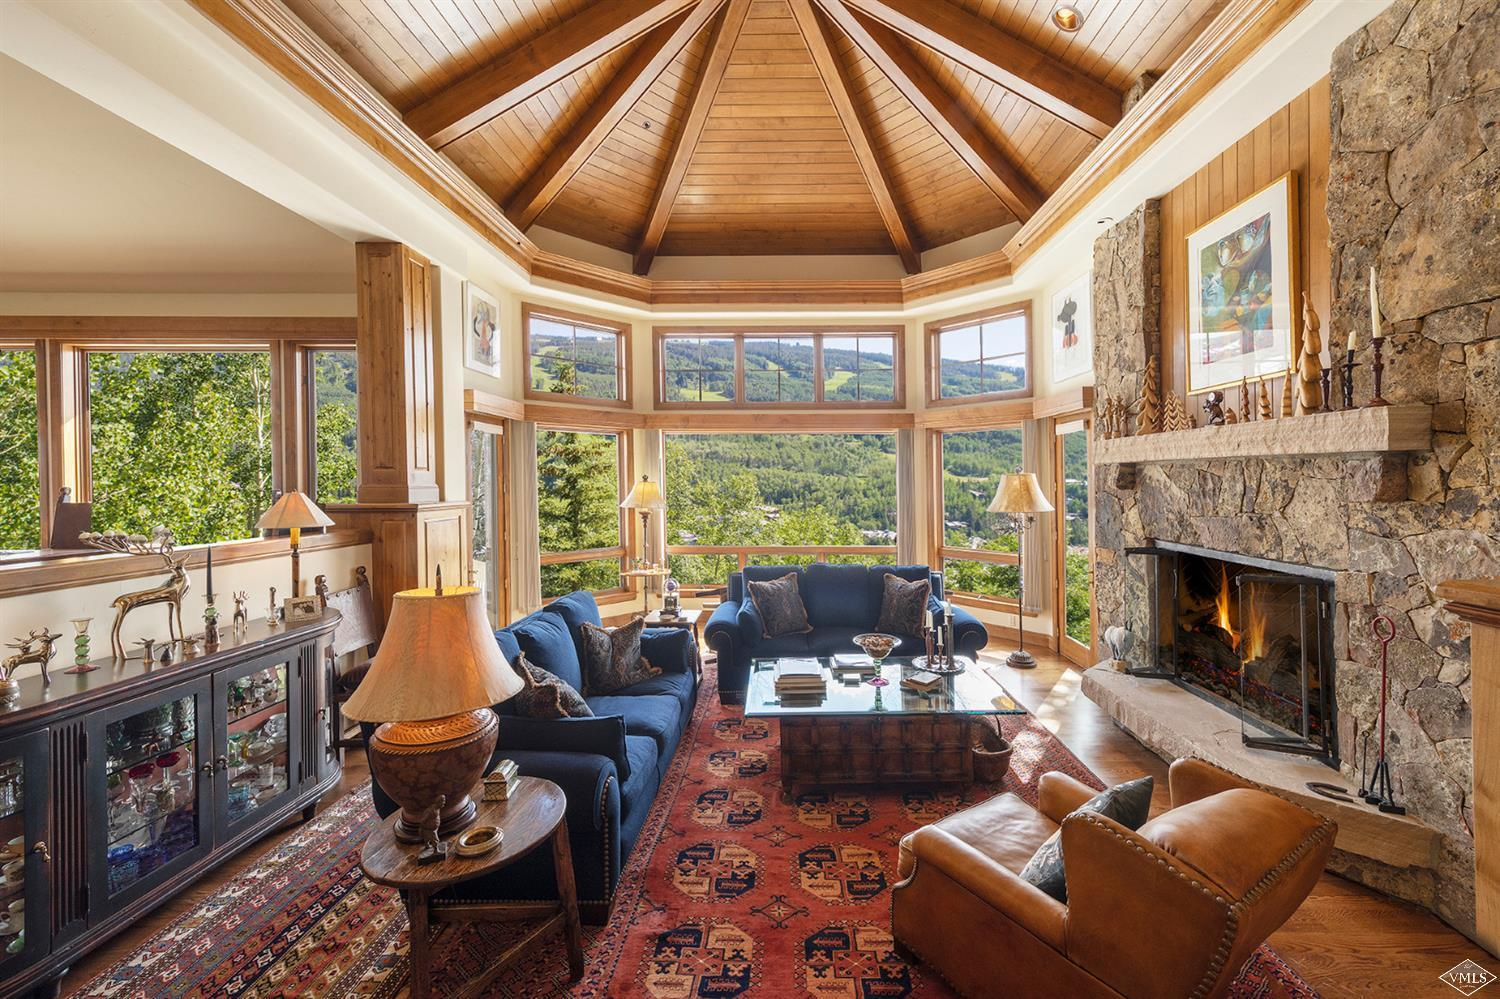 Perched above Vail Village, this exceptional home has panoramic views of Vail Mountain. With four bedrooms, five bathrooms and an excellent floor plan, the abundant sunlight making it warm and inviting. Ideal for families and entertaining, this home has an expansive kitchen, dining room, family room with wet bar, climate controlled wine room, and beautiful outdoor stone decks overlooking Vail Village and Vail Mountain.